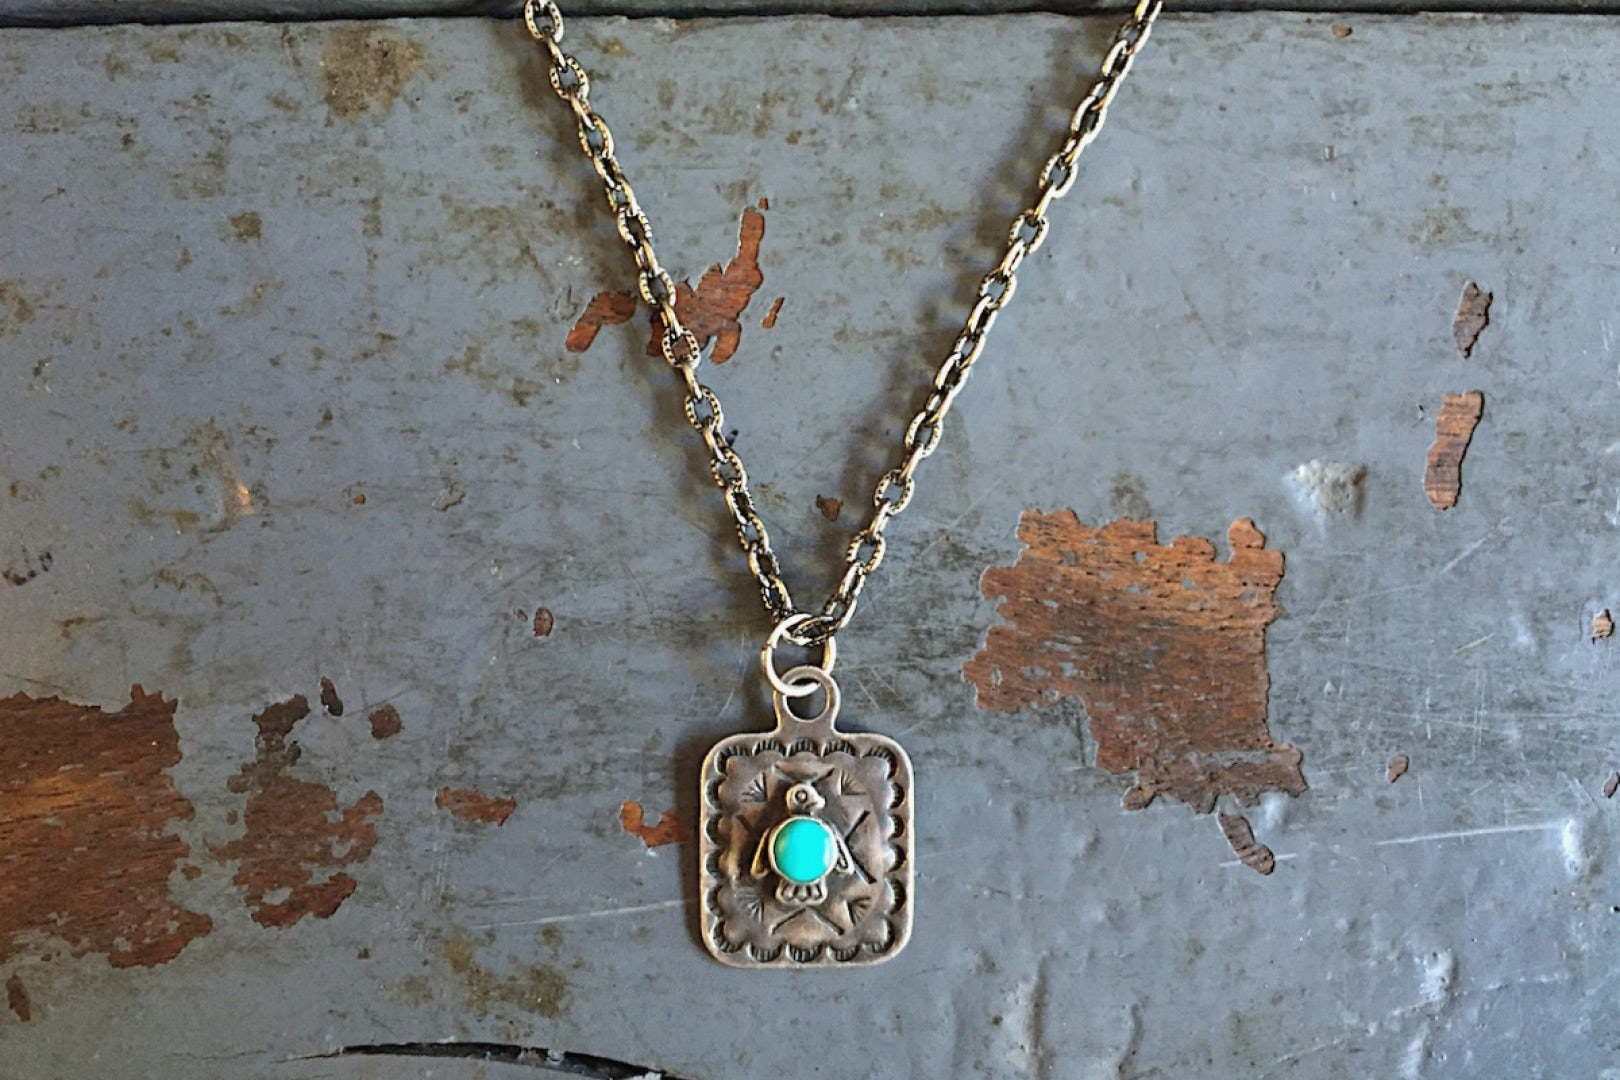 Independence Vintage Goods Pendant Necklace Sterling Silver & Turquoise